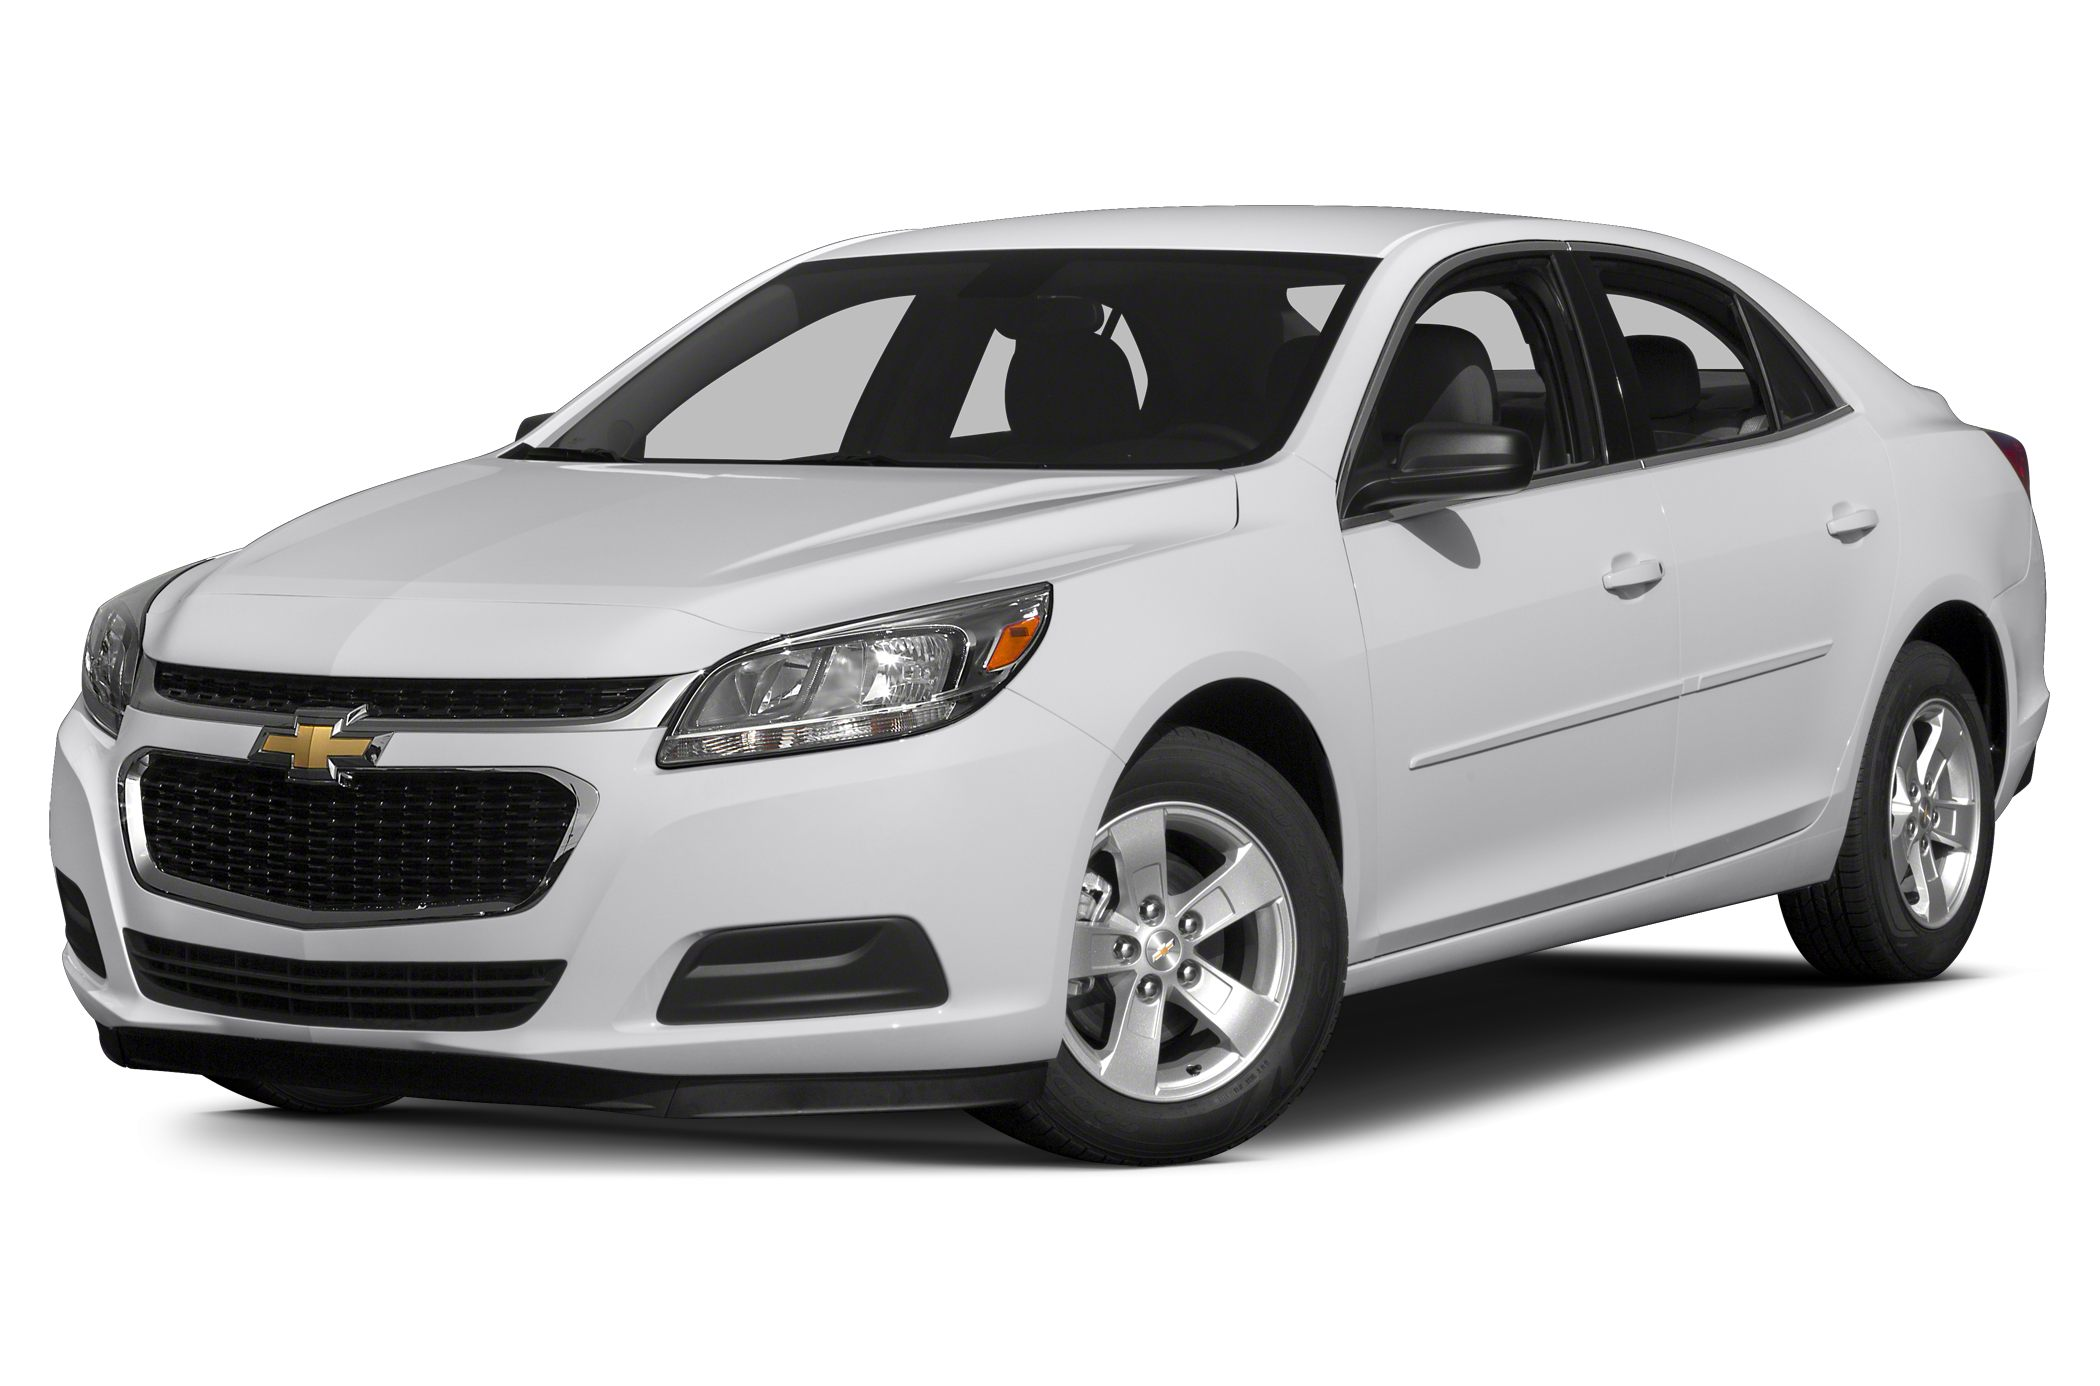 2015 Chevrolet Malibu 1LT Sedan for sale in Massena for $26,210 with 0 miles